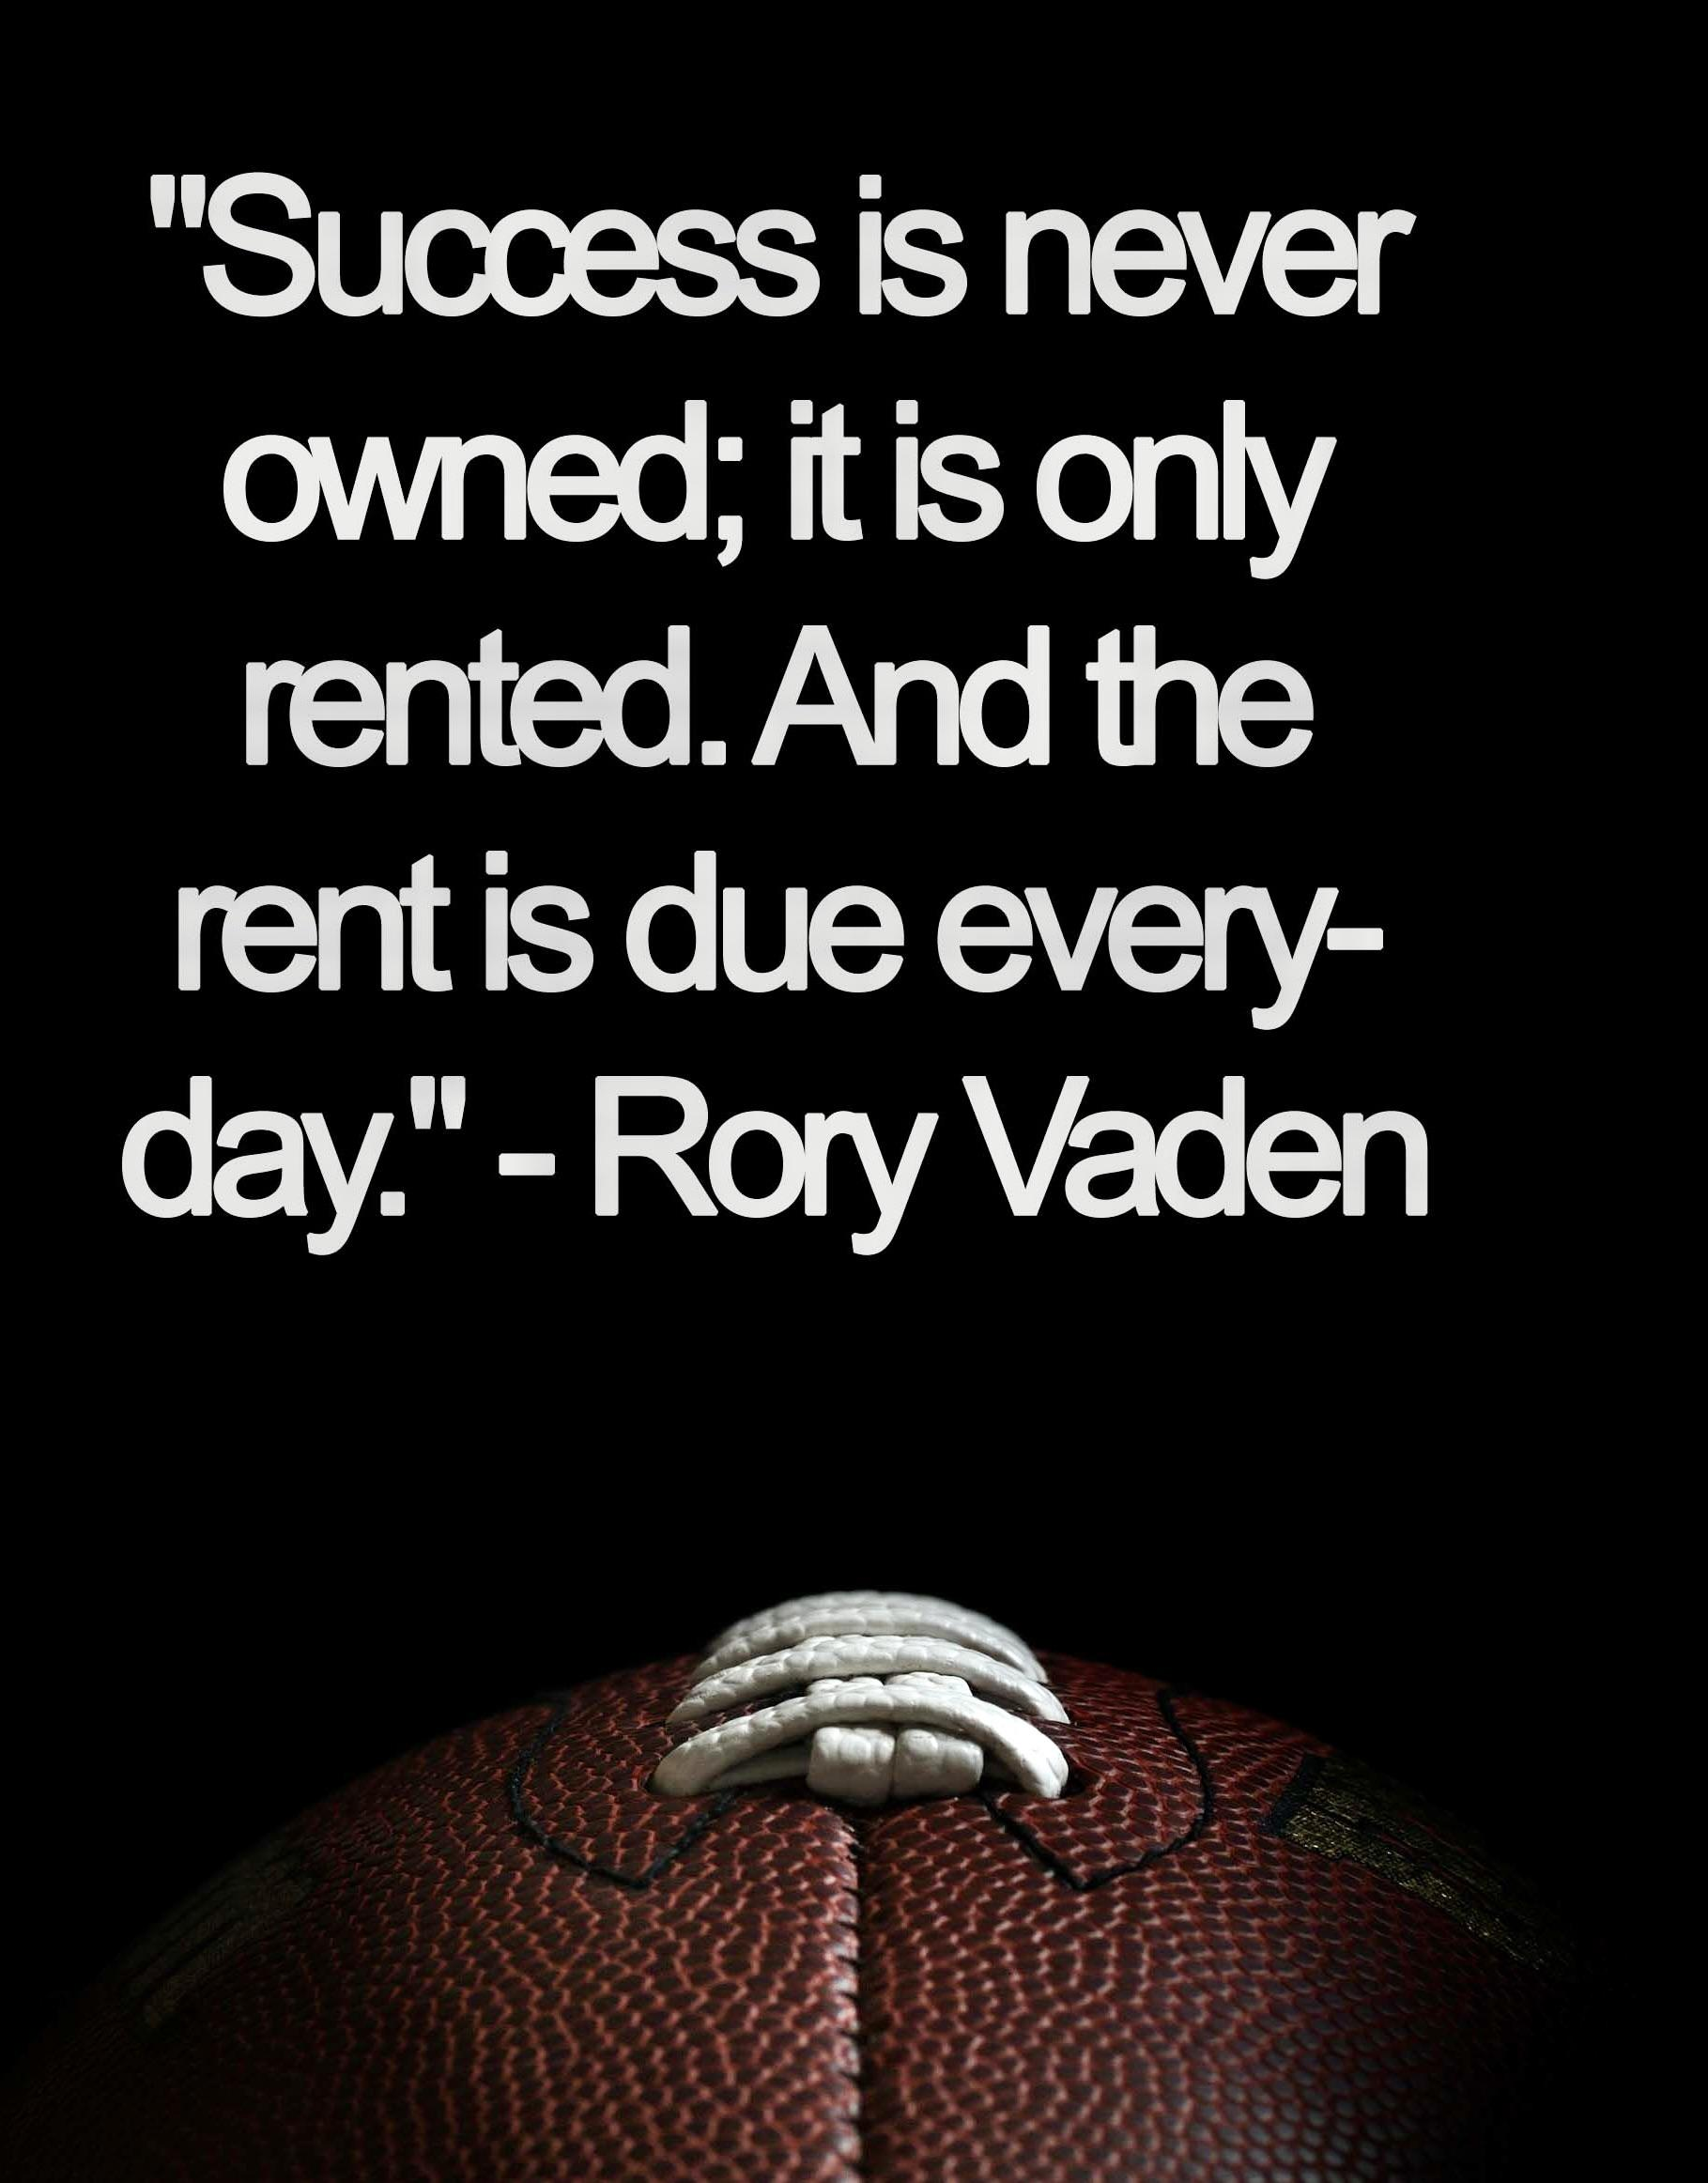 [Image] – Success is rented